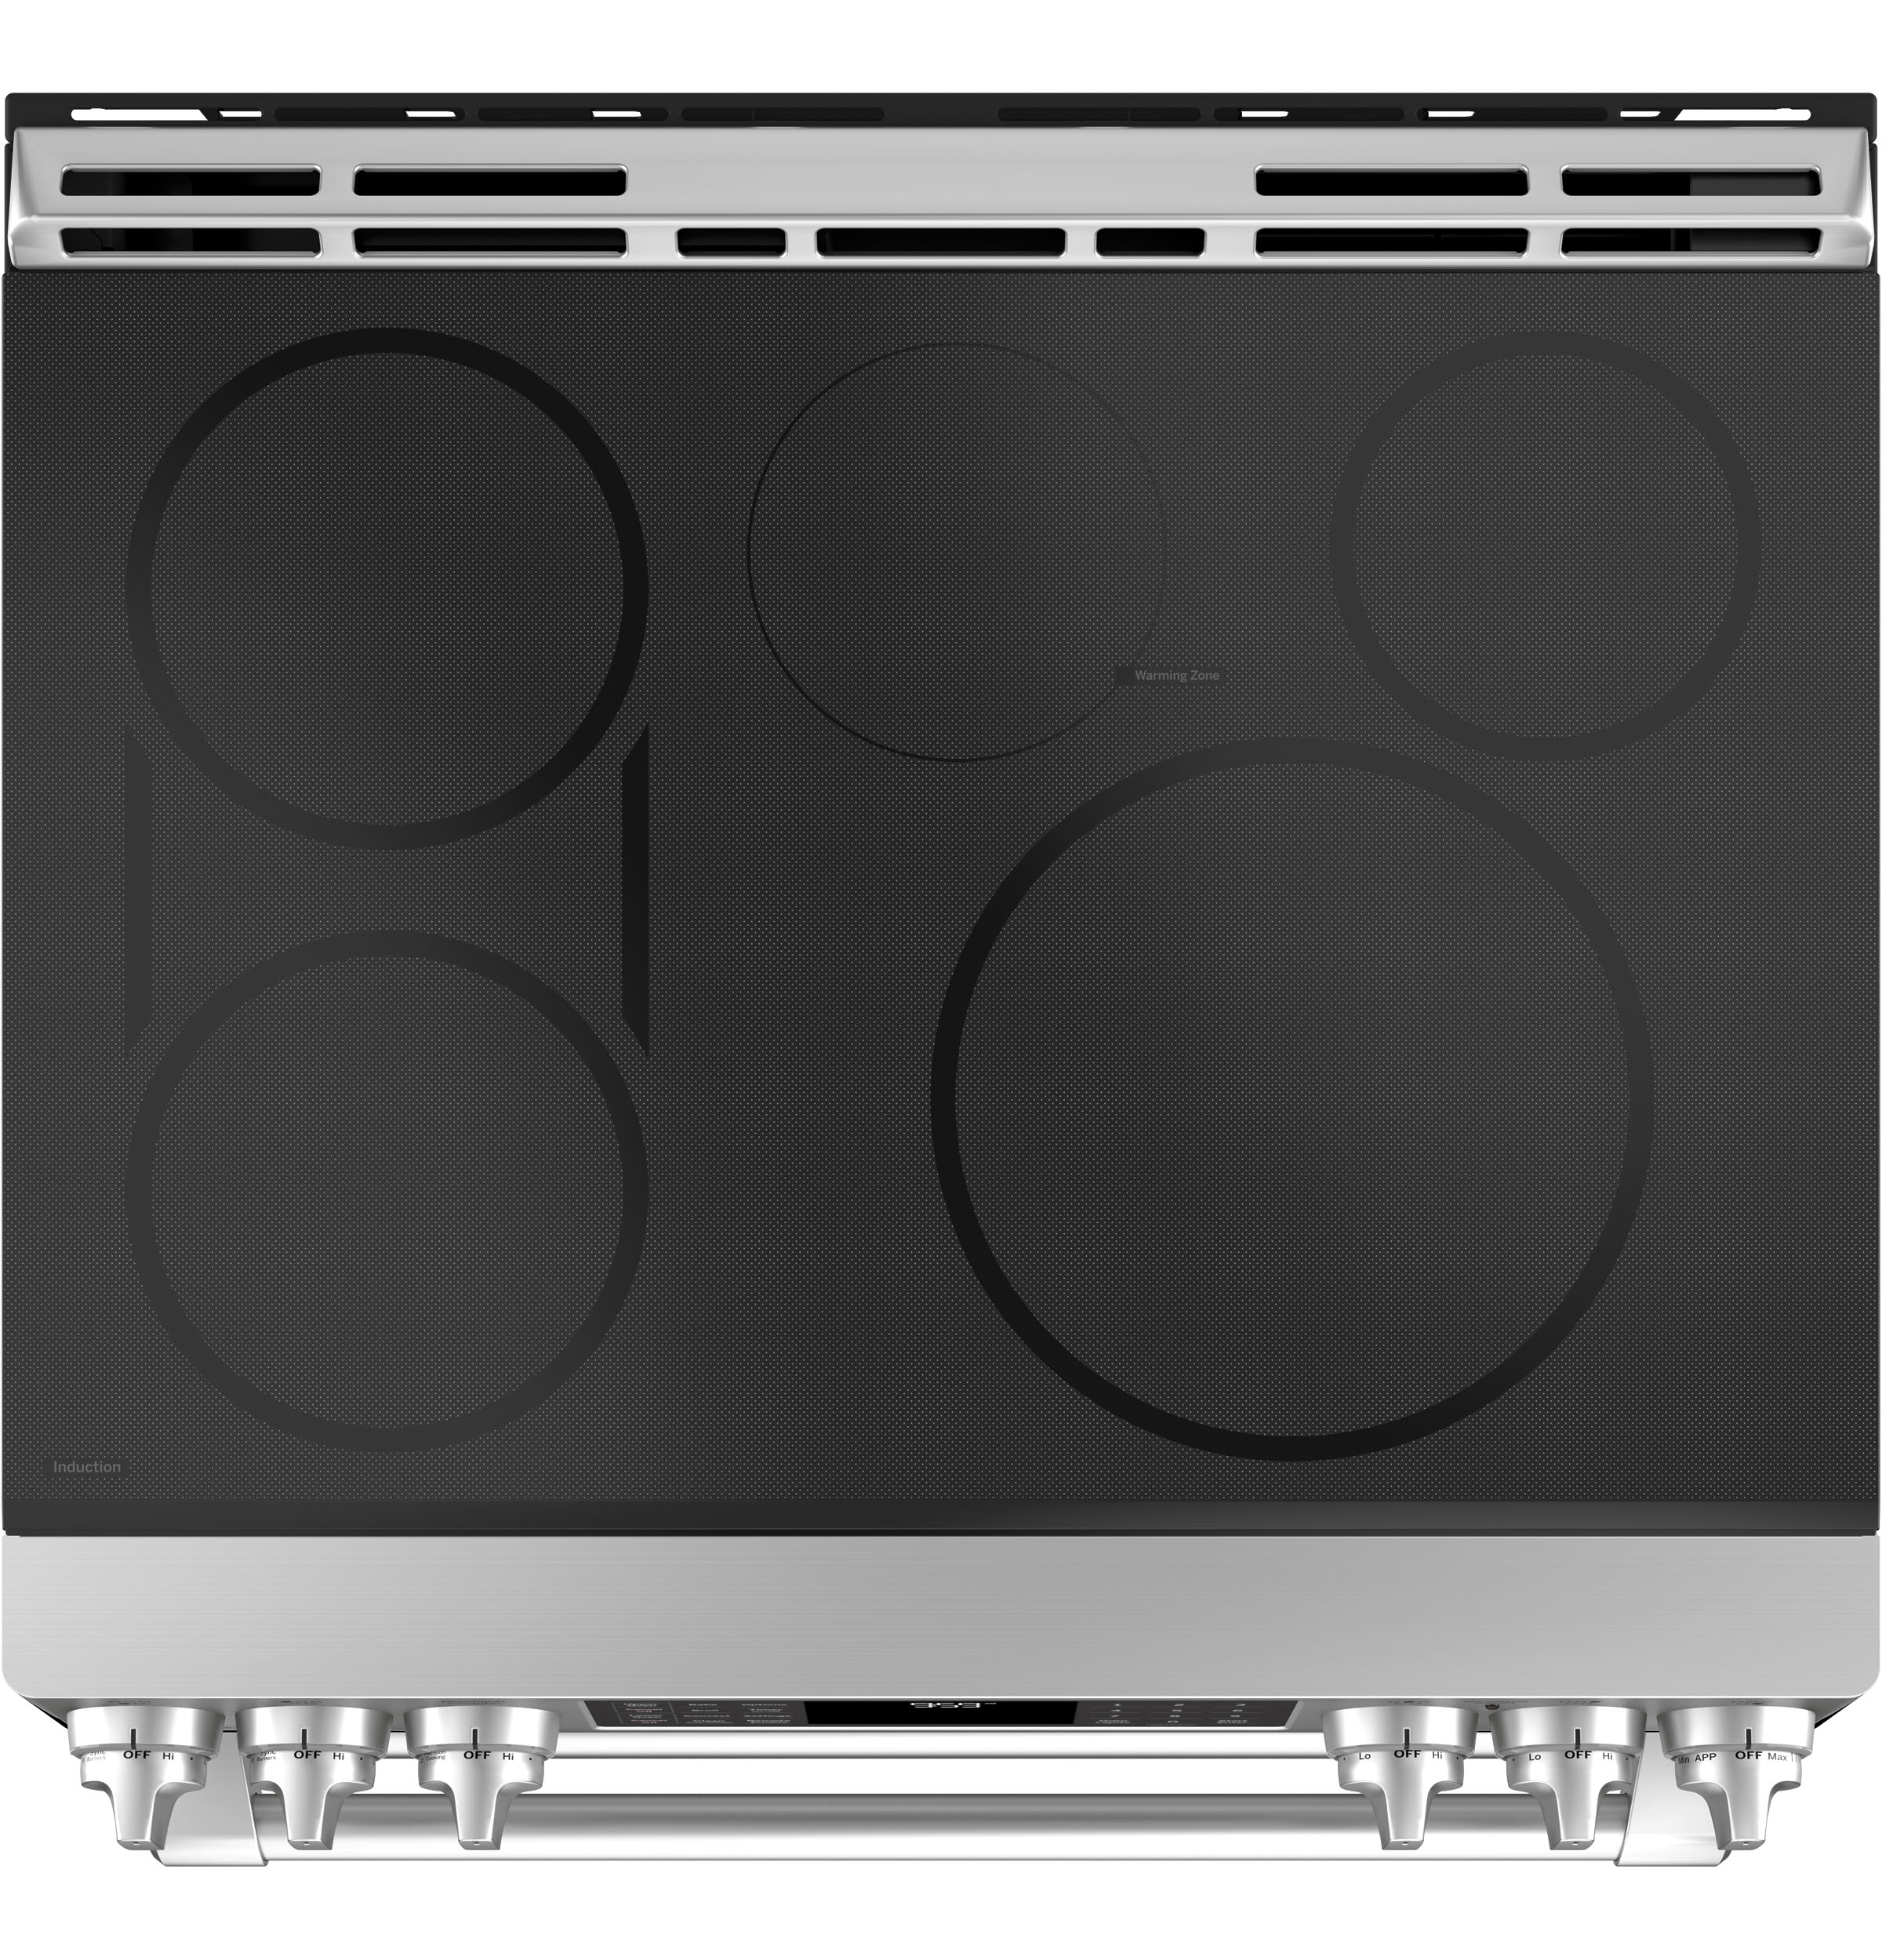 Ge Cafe Series 30 Slide In Front Control Induction And Convection Circuit Board Low Price Cookerb3 View Product Image